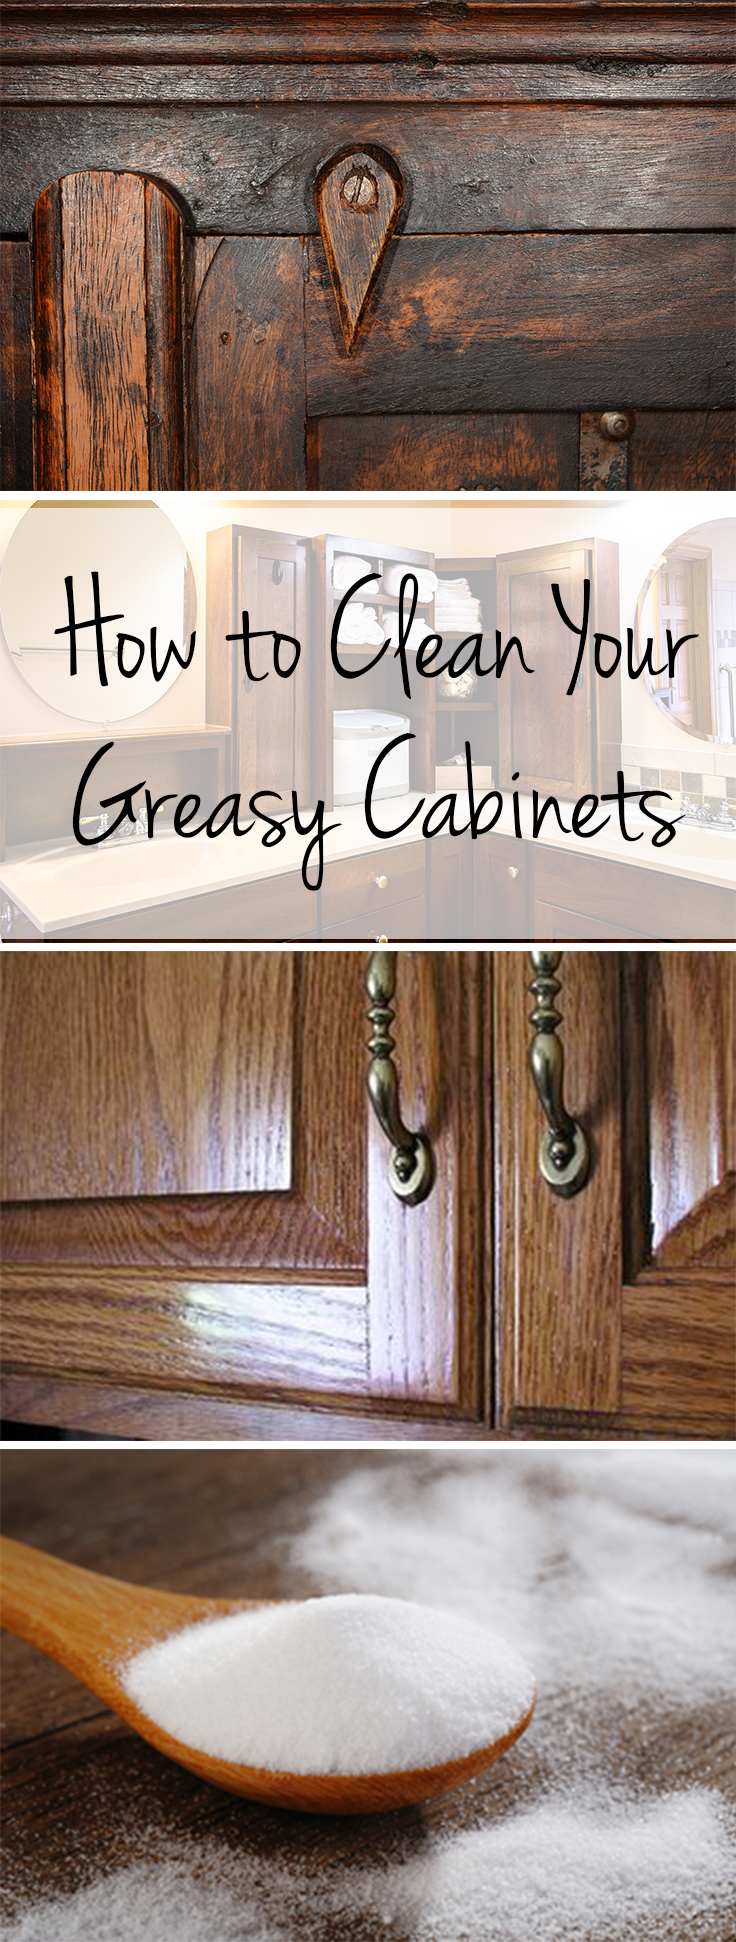 How to Clean Your Greasy Cabinets  Wrapped in Rust